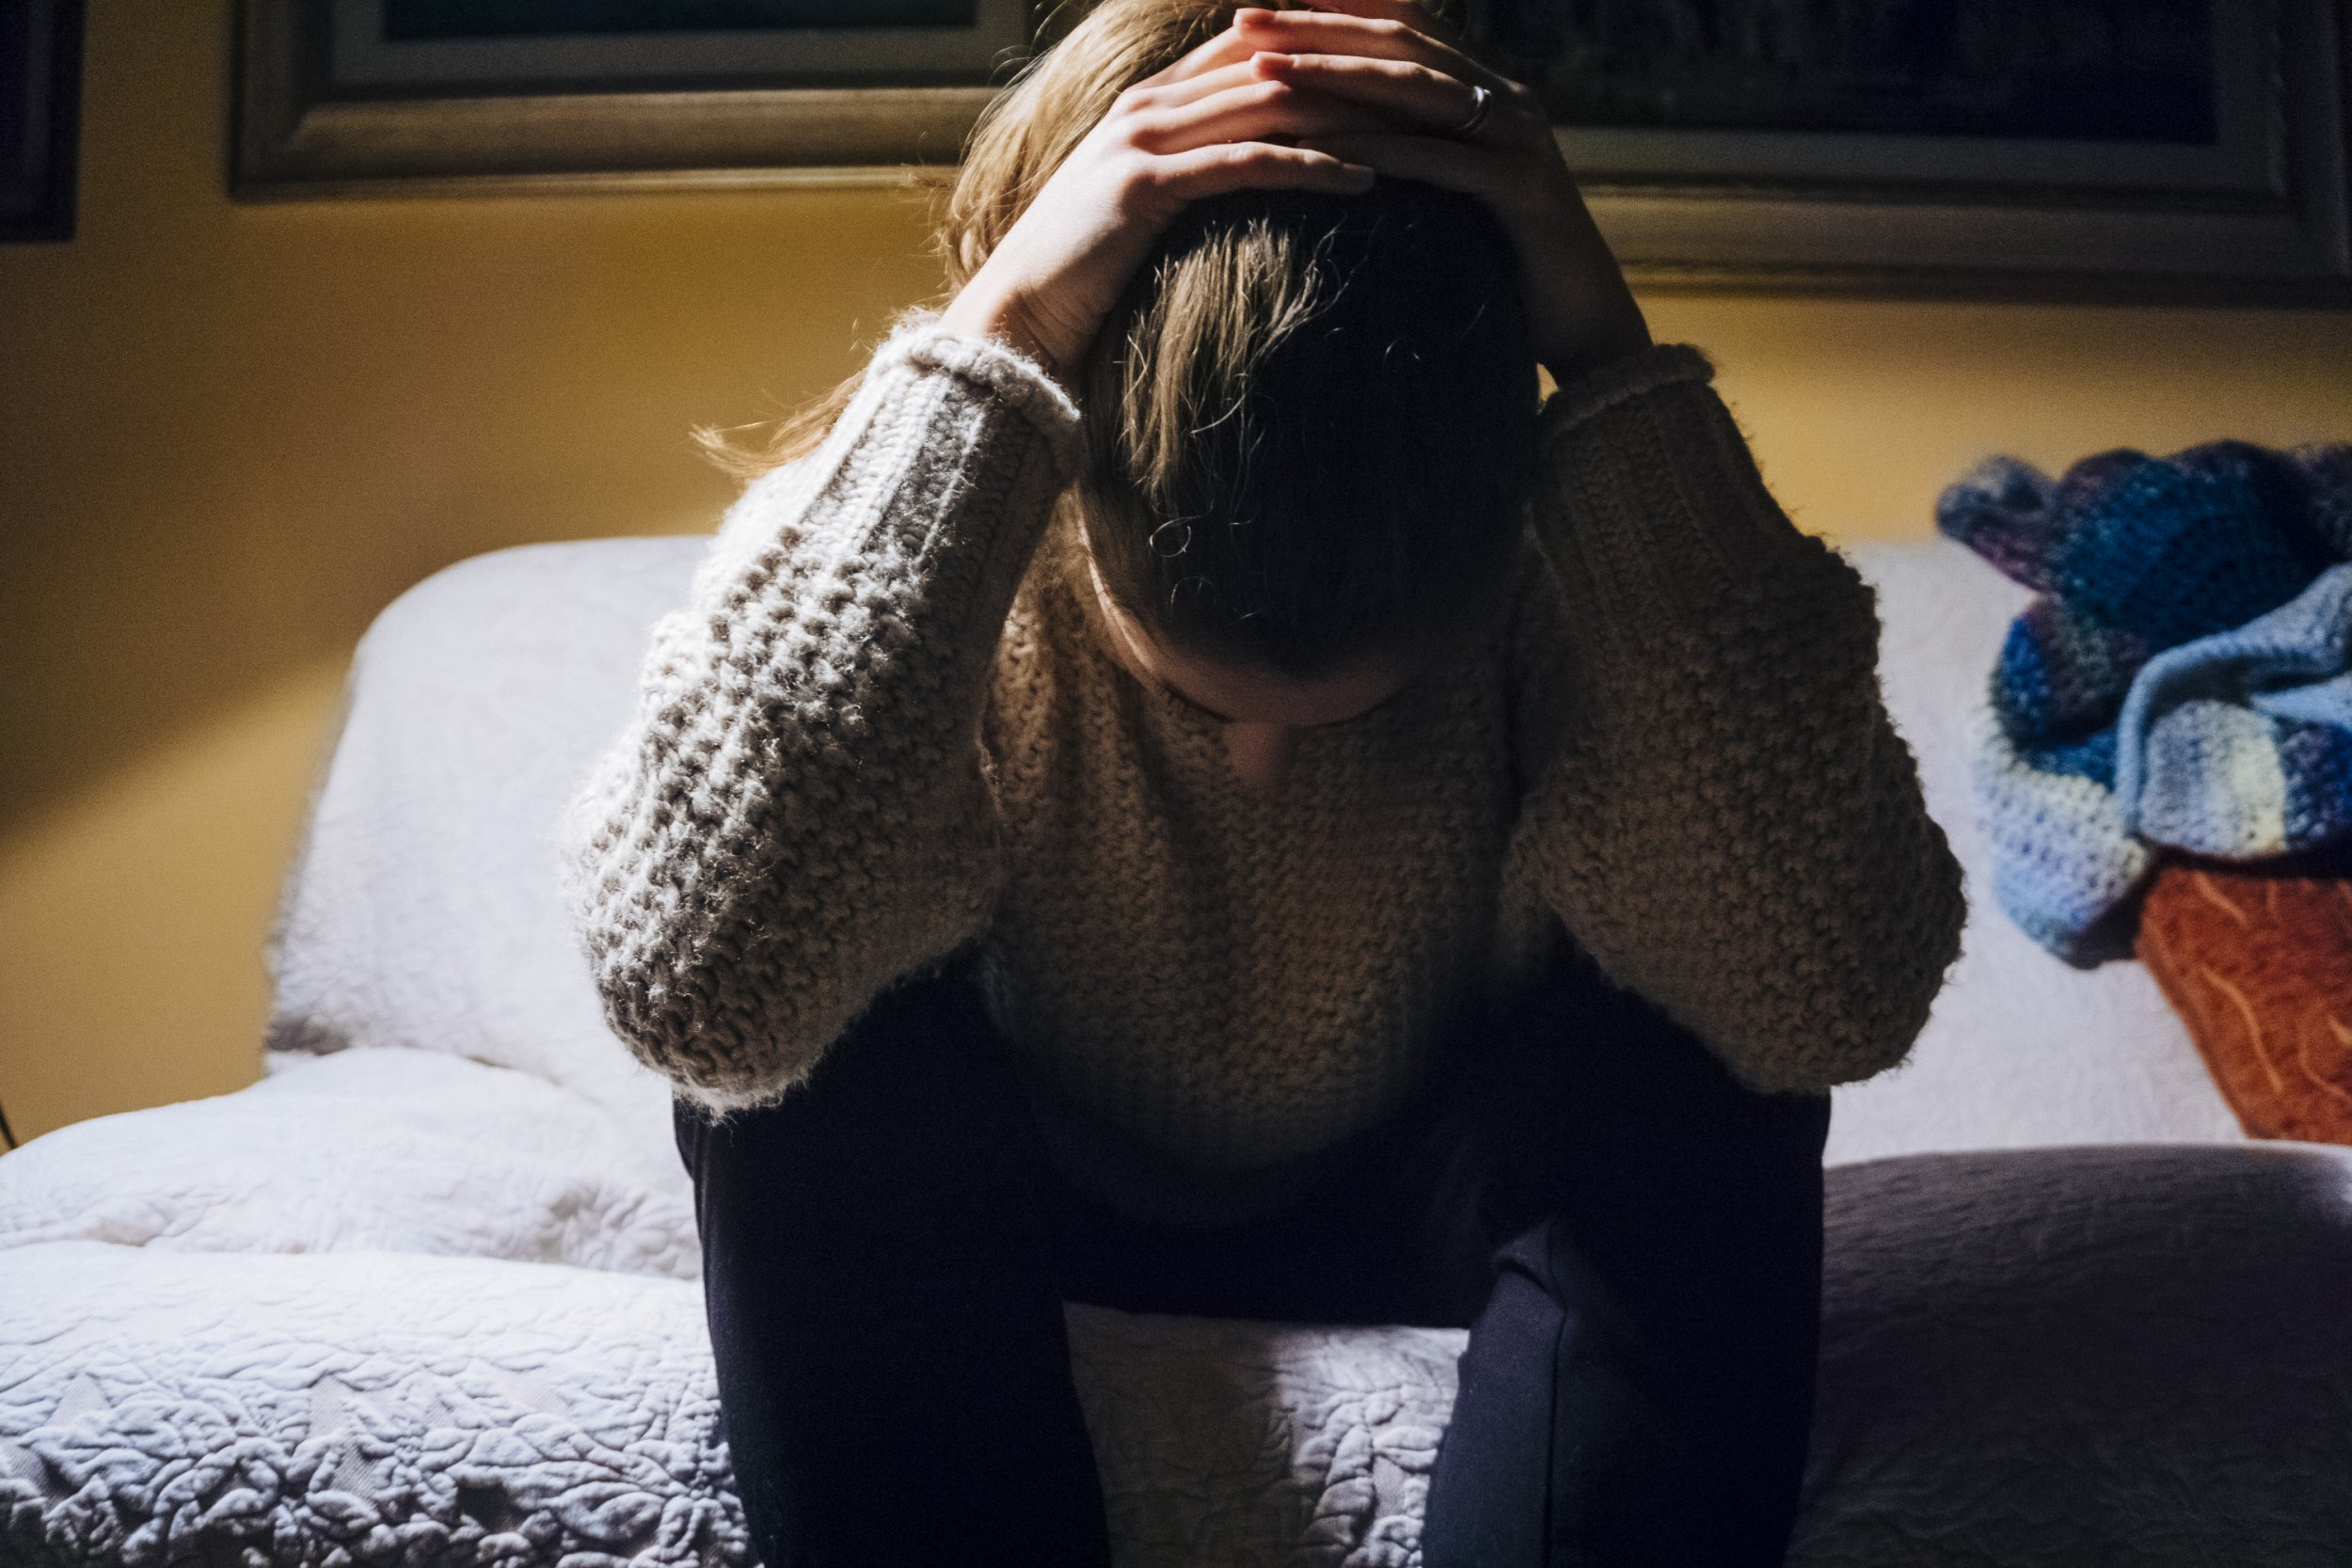 PTSD affects 'one in 13 by age of 18' Young woman suffering from headache